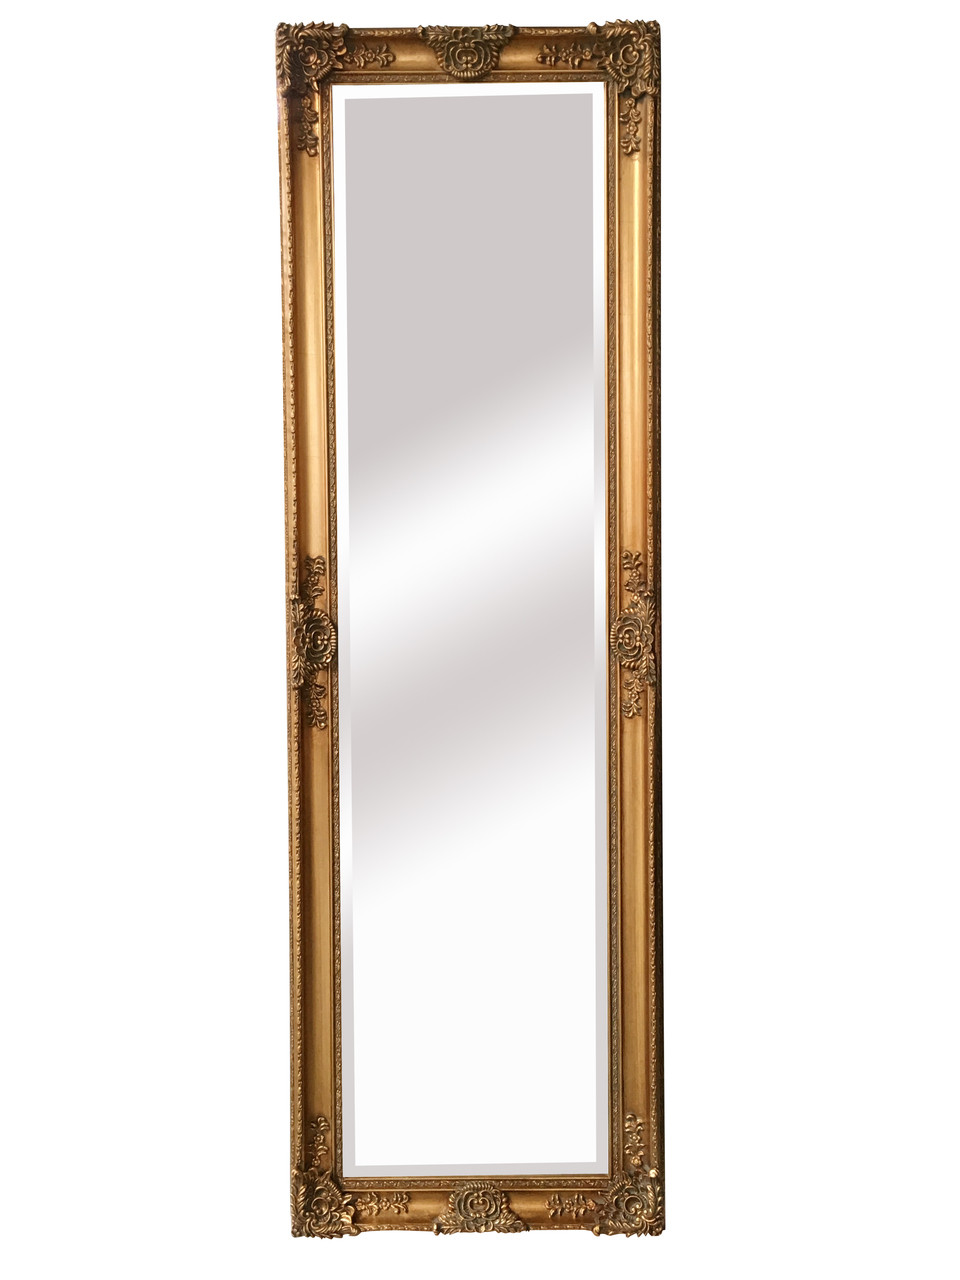 Mayfair Belle French Traditional Antique Gold Full Length Mirror Sbc Decor